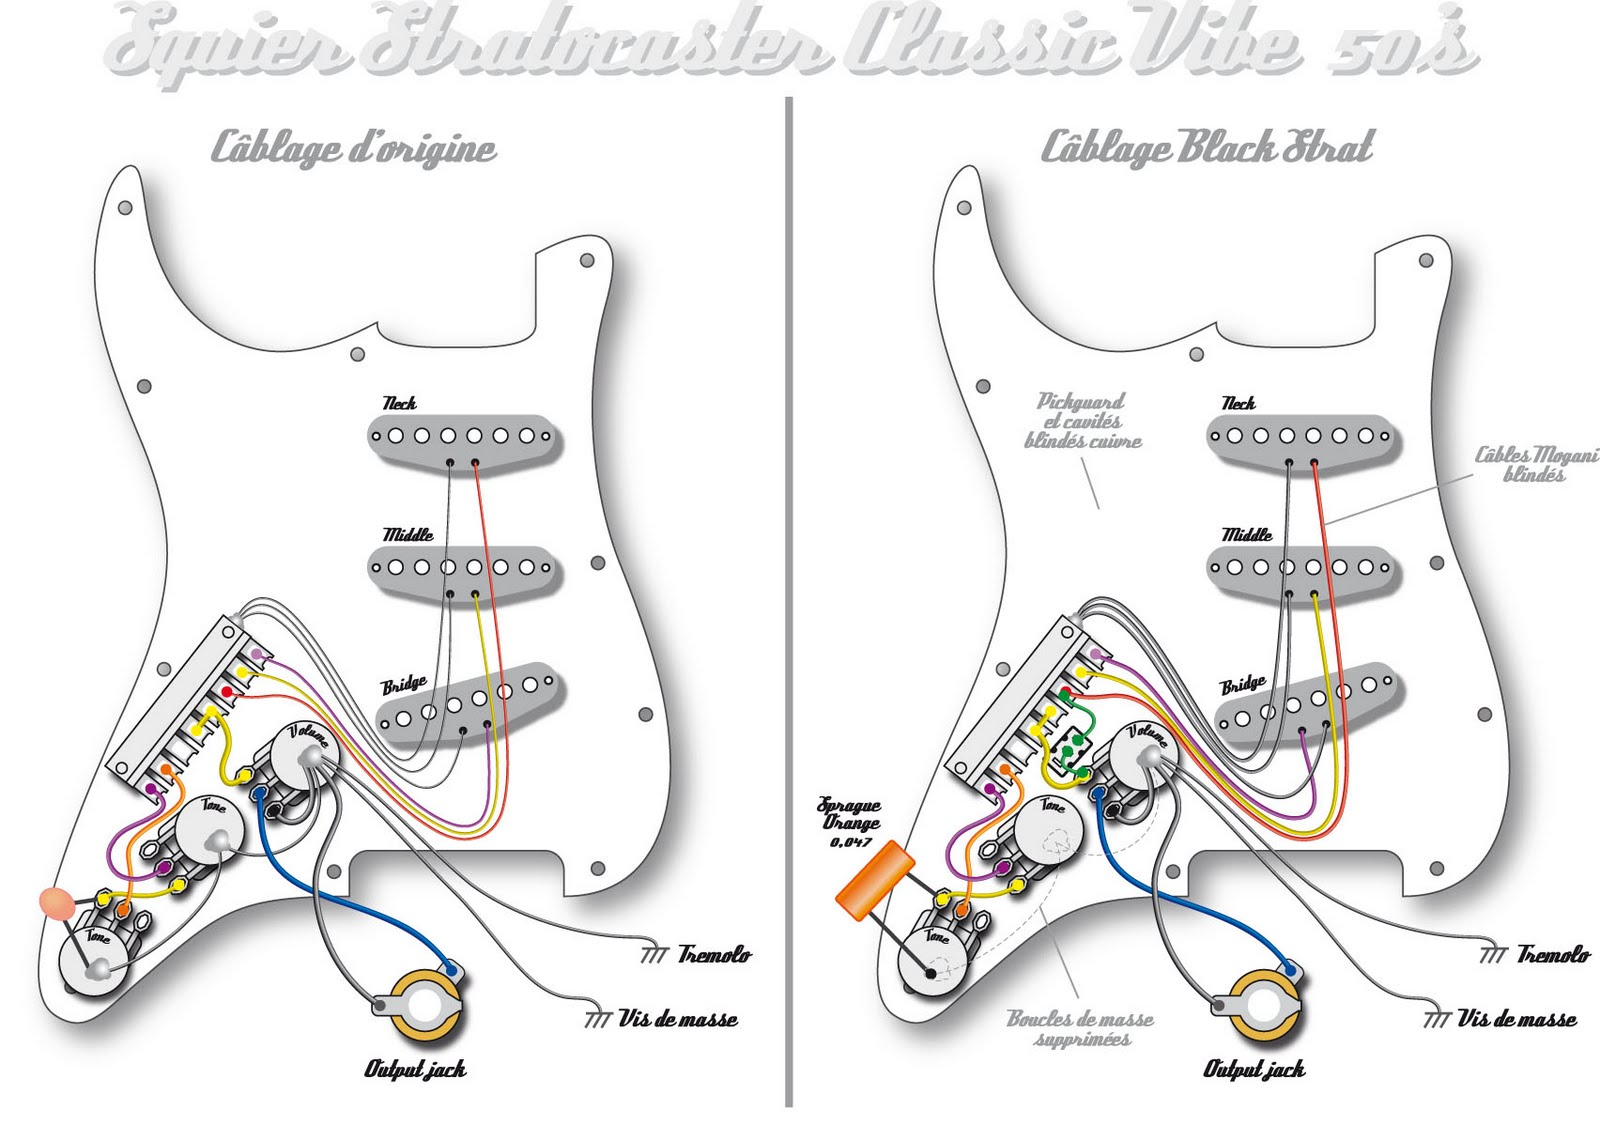 56 Fender Telecaster Wiring Diagram Trusted Diagrams Tbx Stratocaster Free Engine 3 Way Switch 7